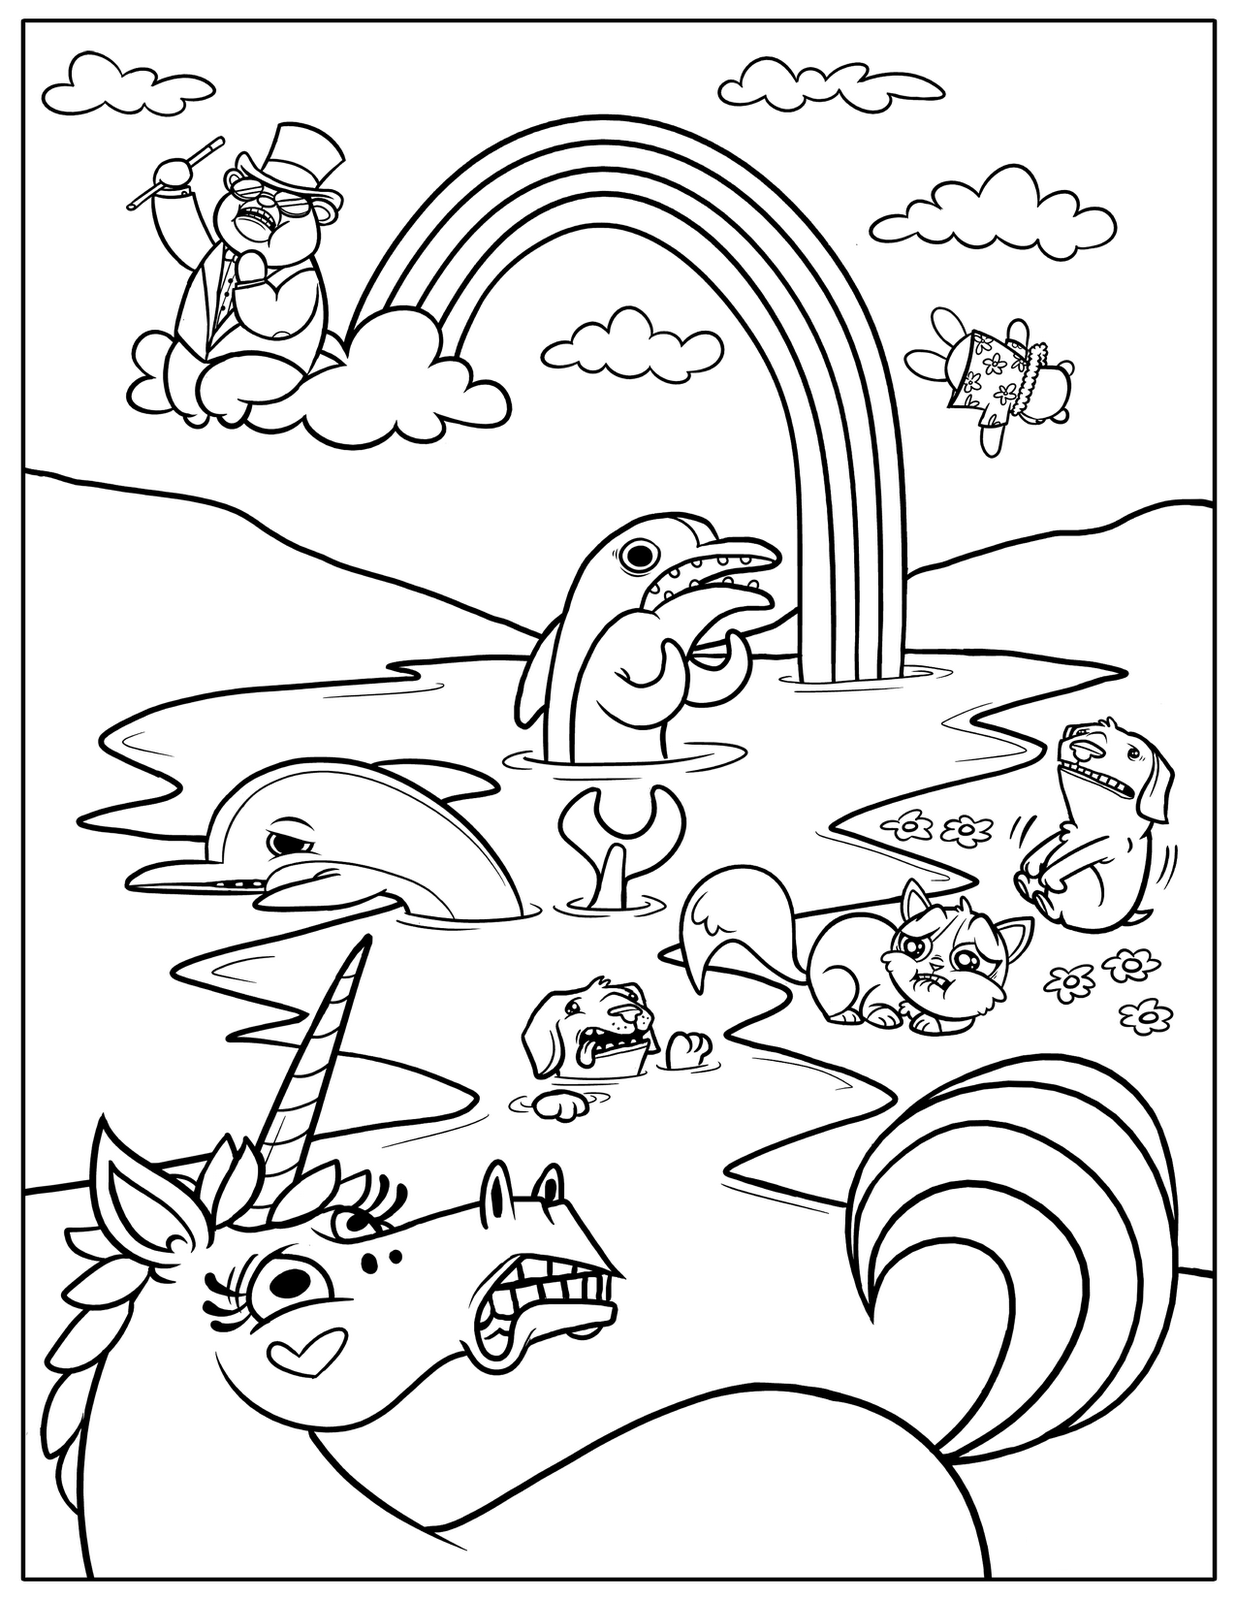 Free printable rainbow coloring pages for kids for Printable color by number pages for kids